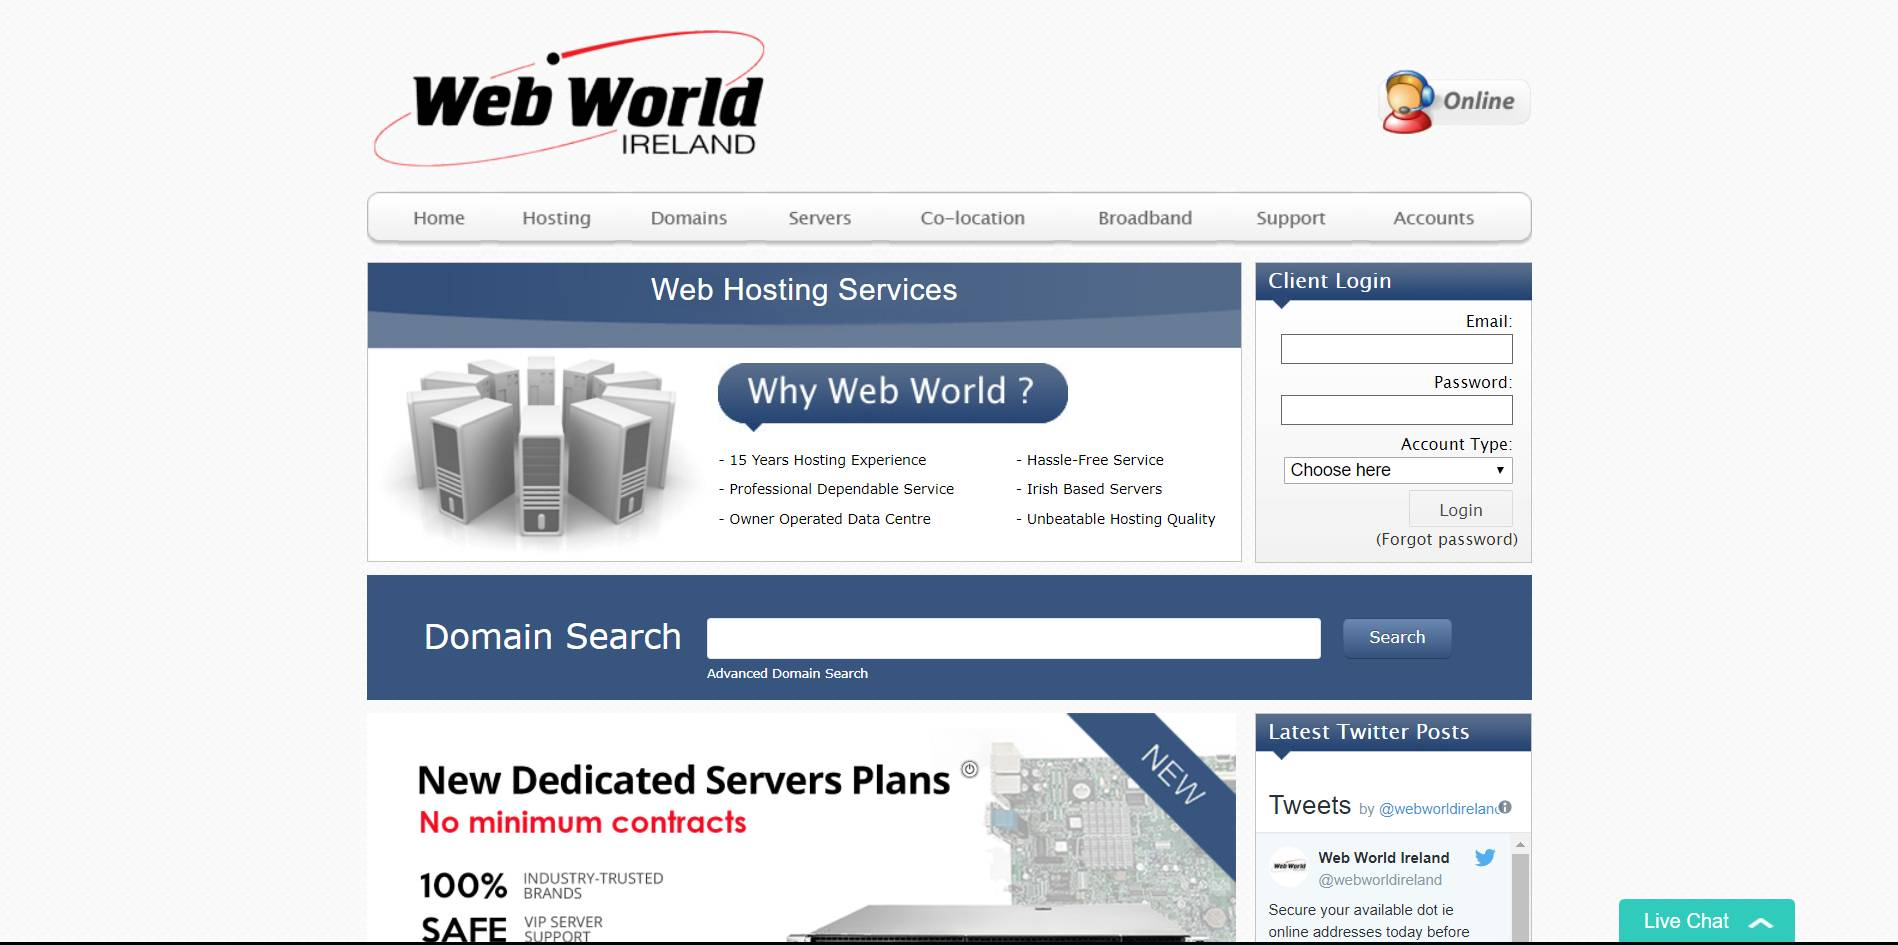 Web World